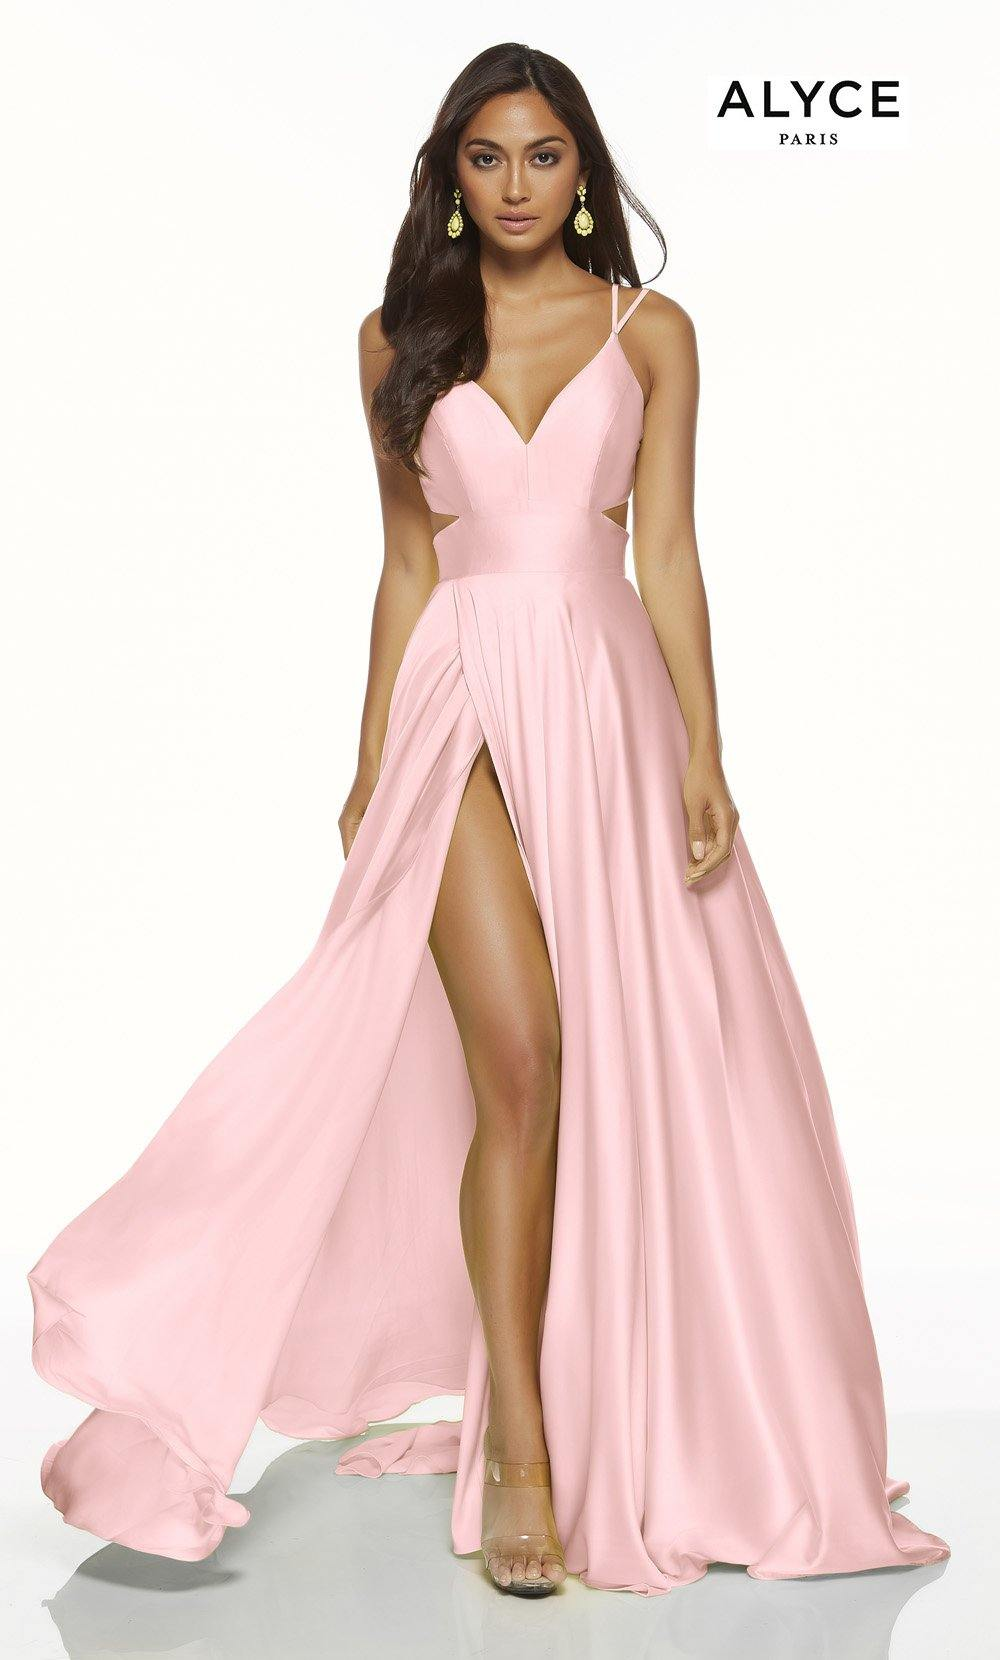 Rosewood Pink flowy satin chiffon prom dress with a V neck, side cutouts, and front slit